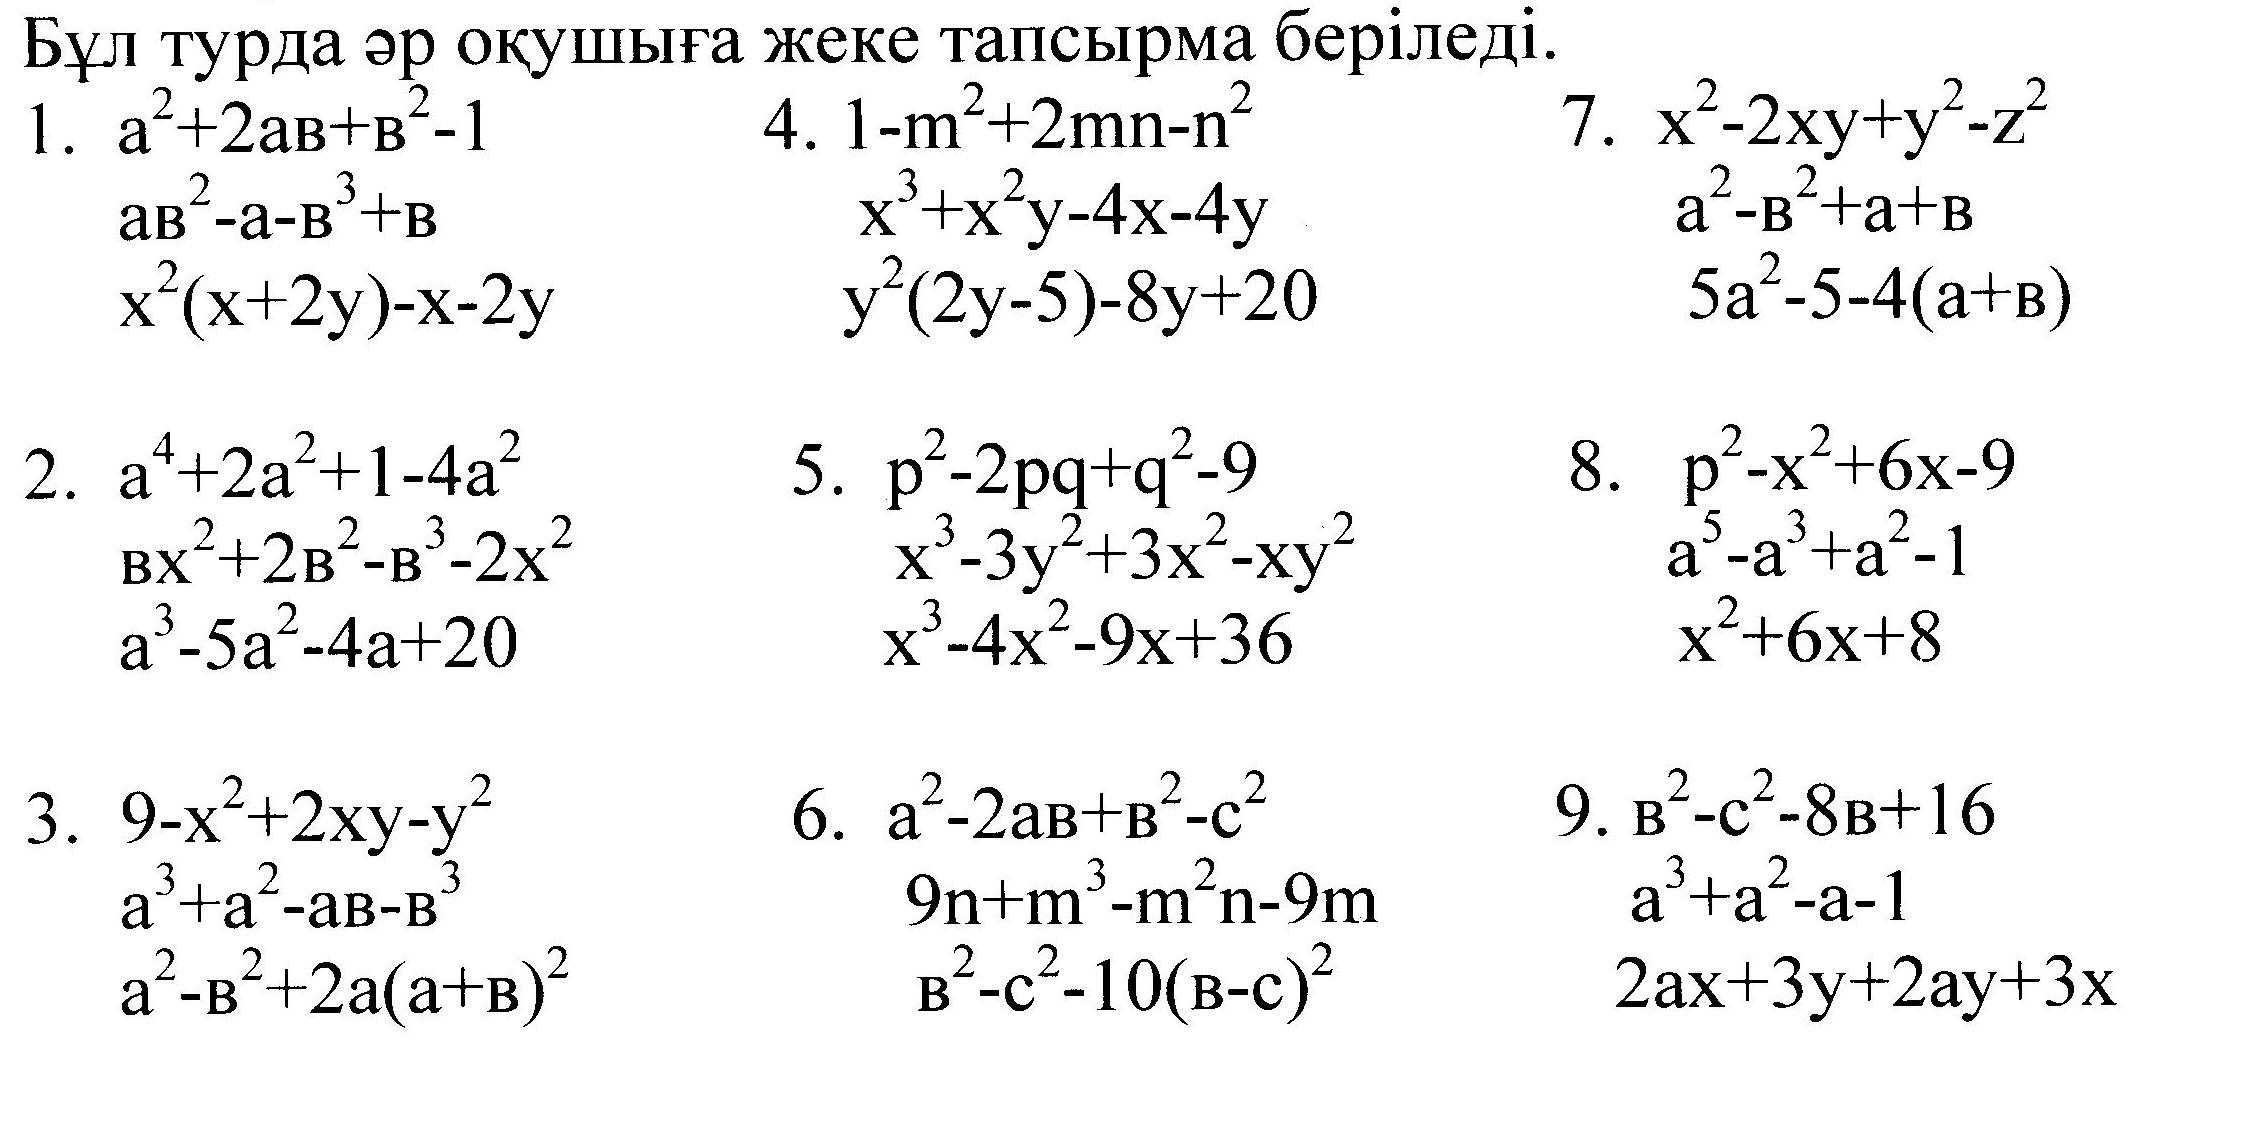 C:\Documents and Settings\1\Local Settings\Temporary Internet Files\Content.Word\сертификат4 003.jpg